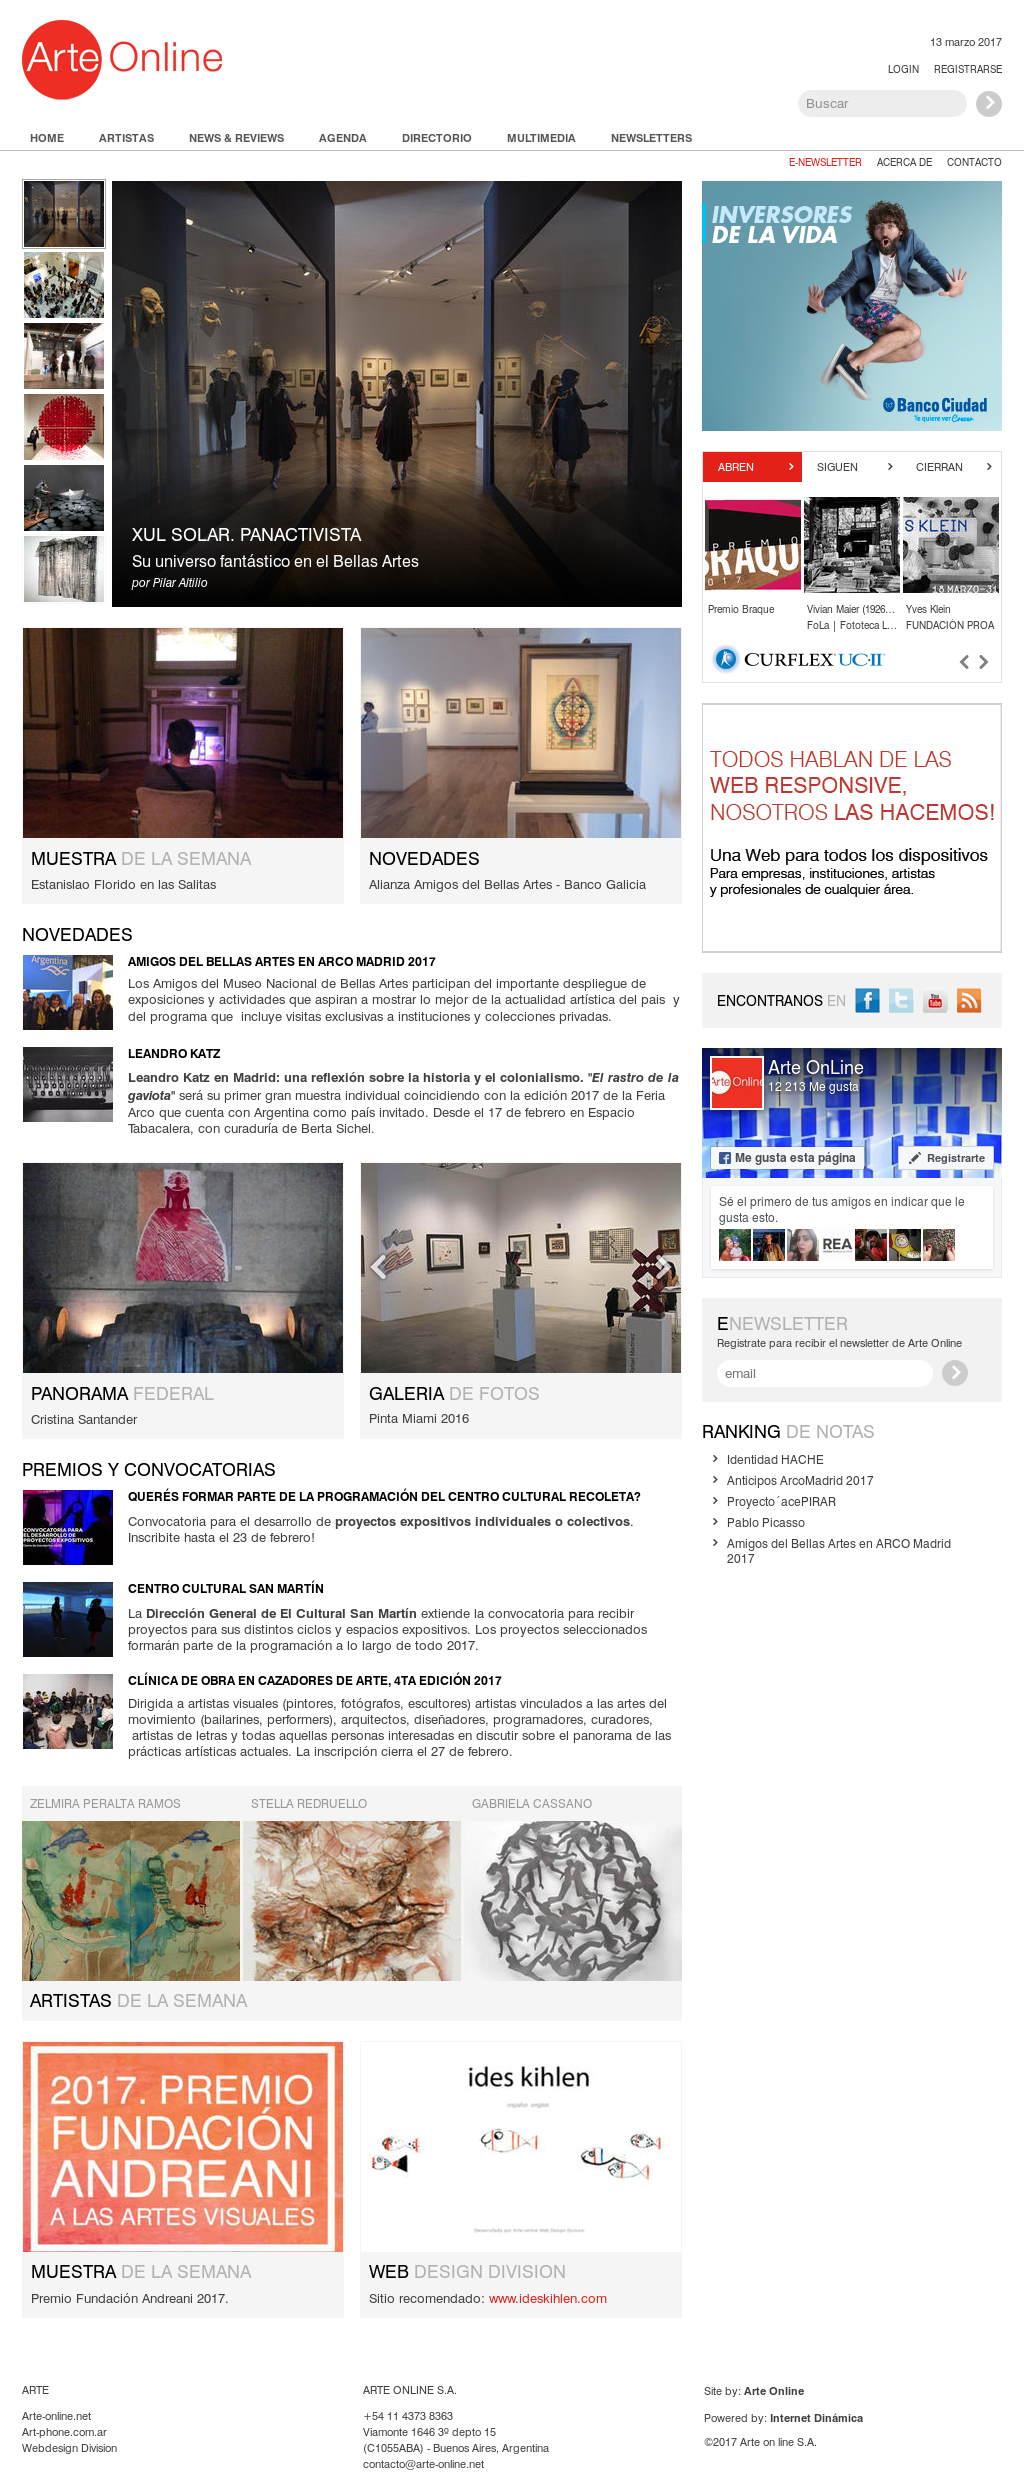 Arte Online Madrid Arte Online Competitors Revenue And Employees Owler Company Profile